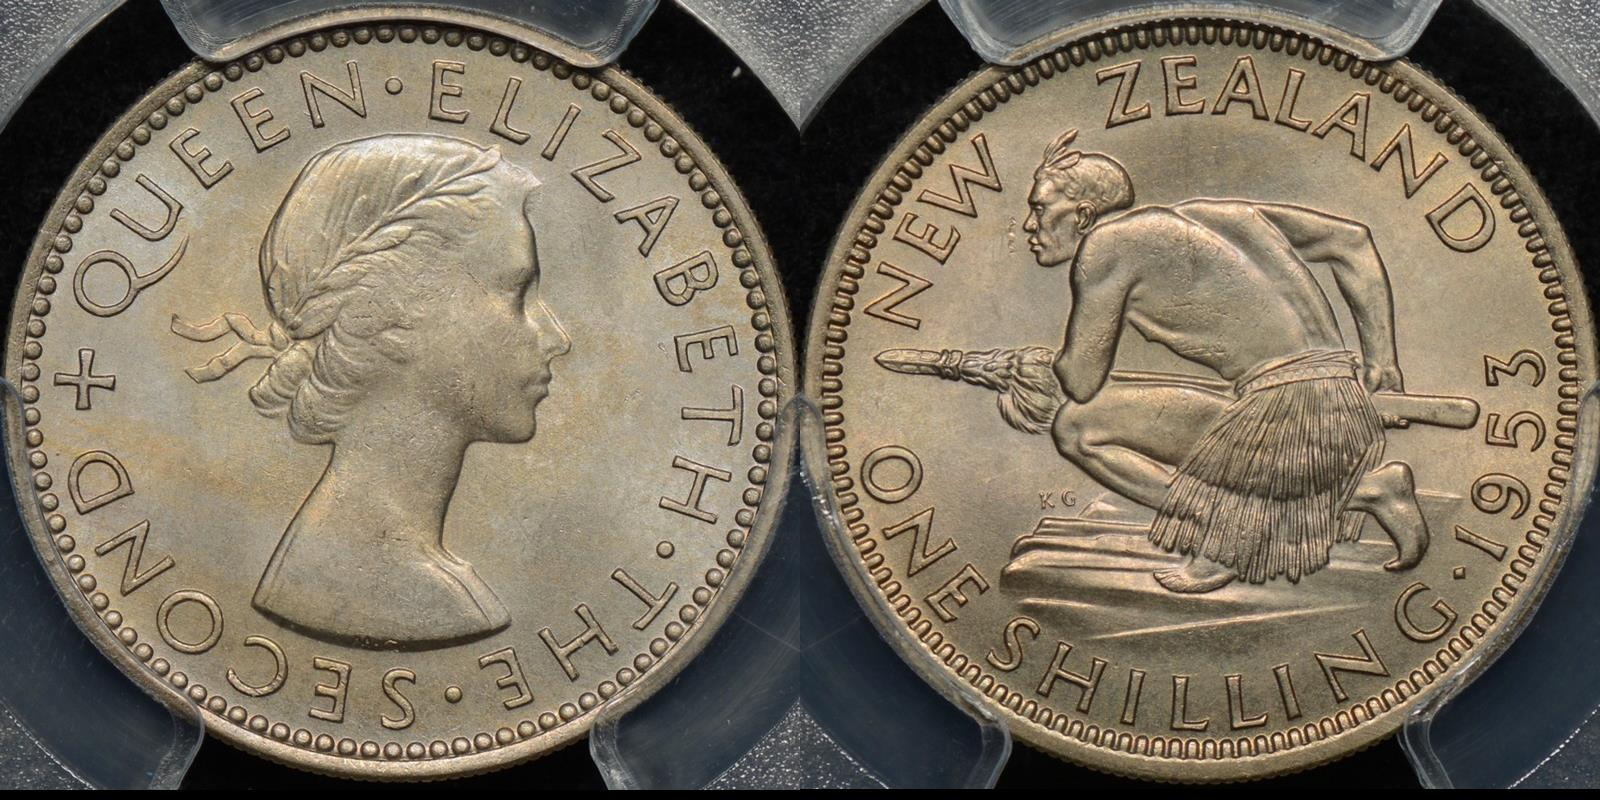 New zealand 1953 shilling 1s PCGS MS65 GEM Uncirculated